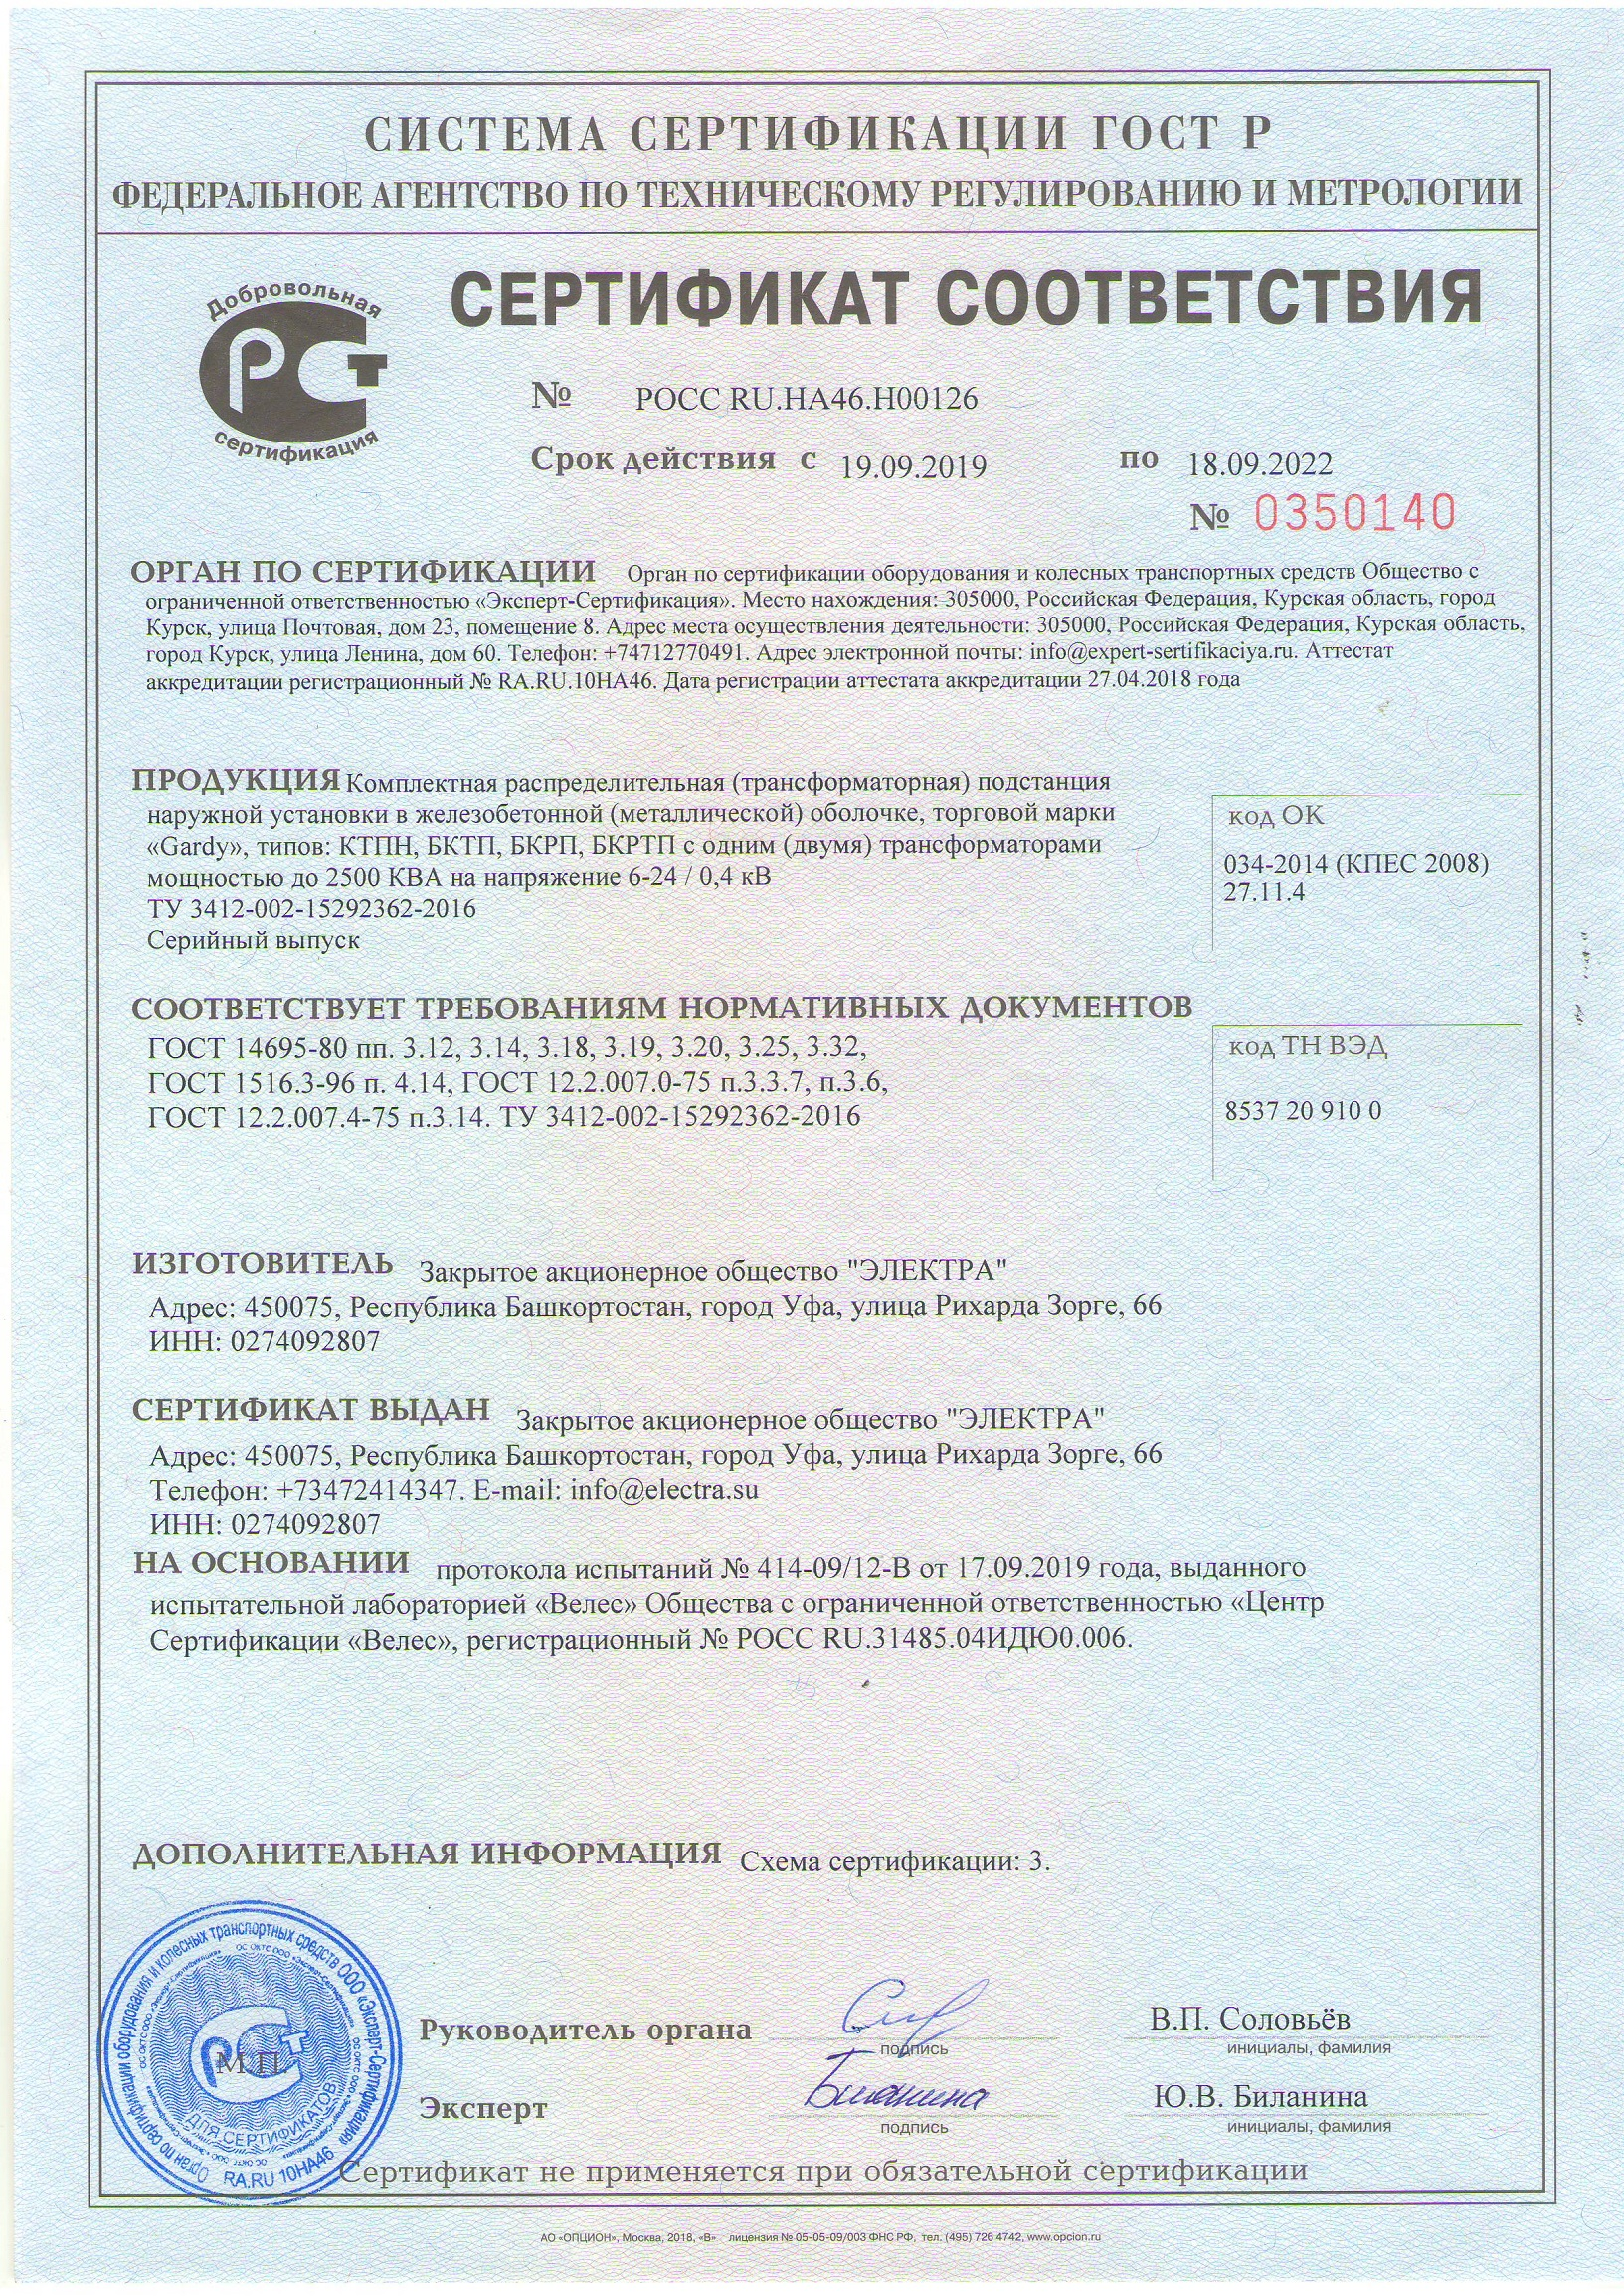 GOST certificate